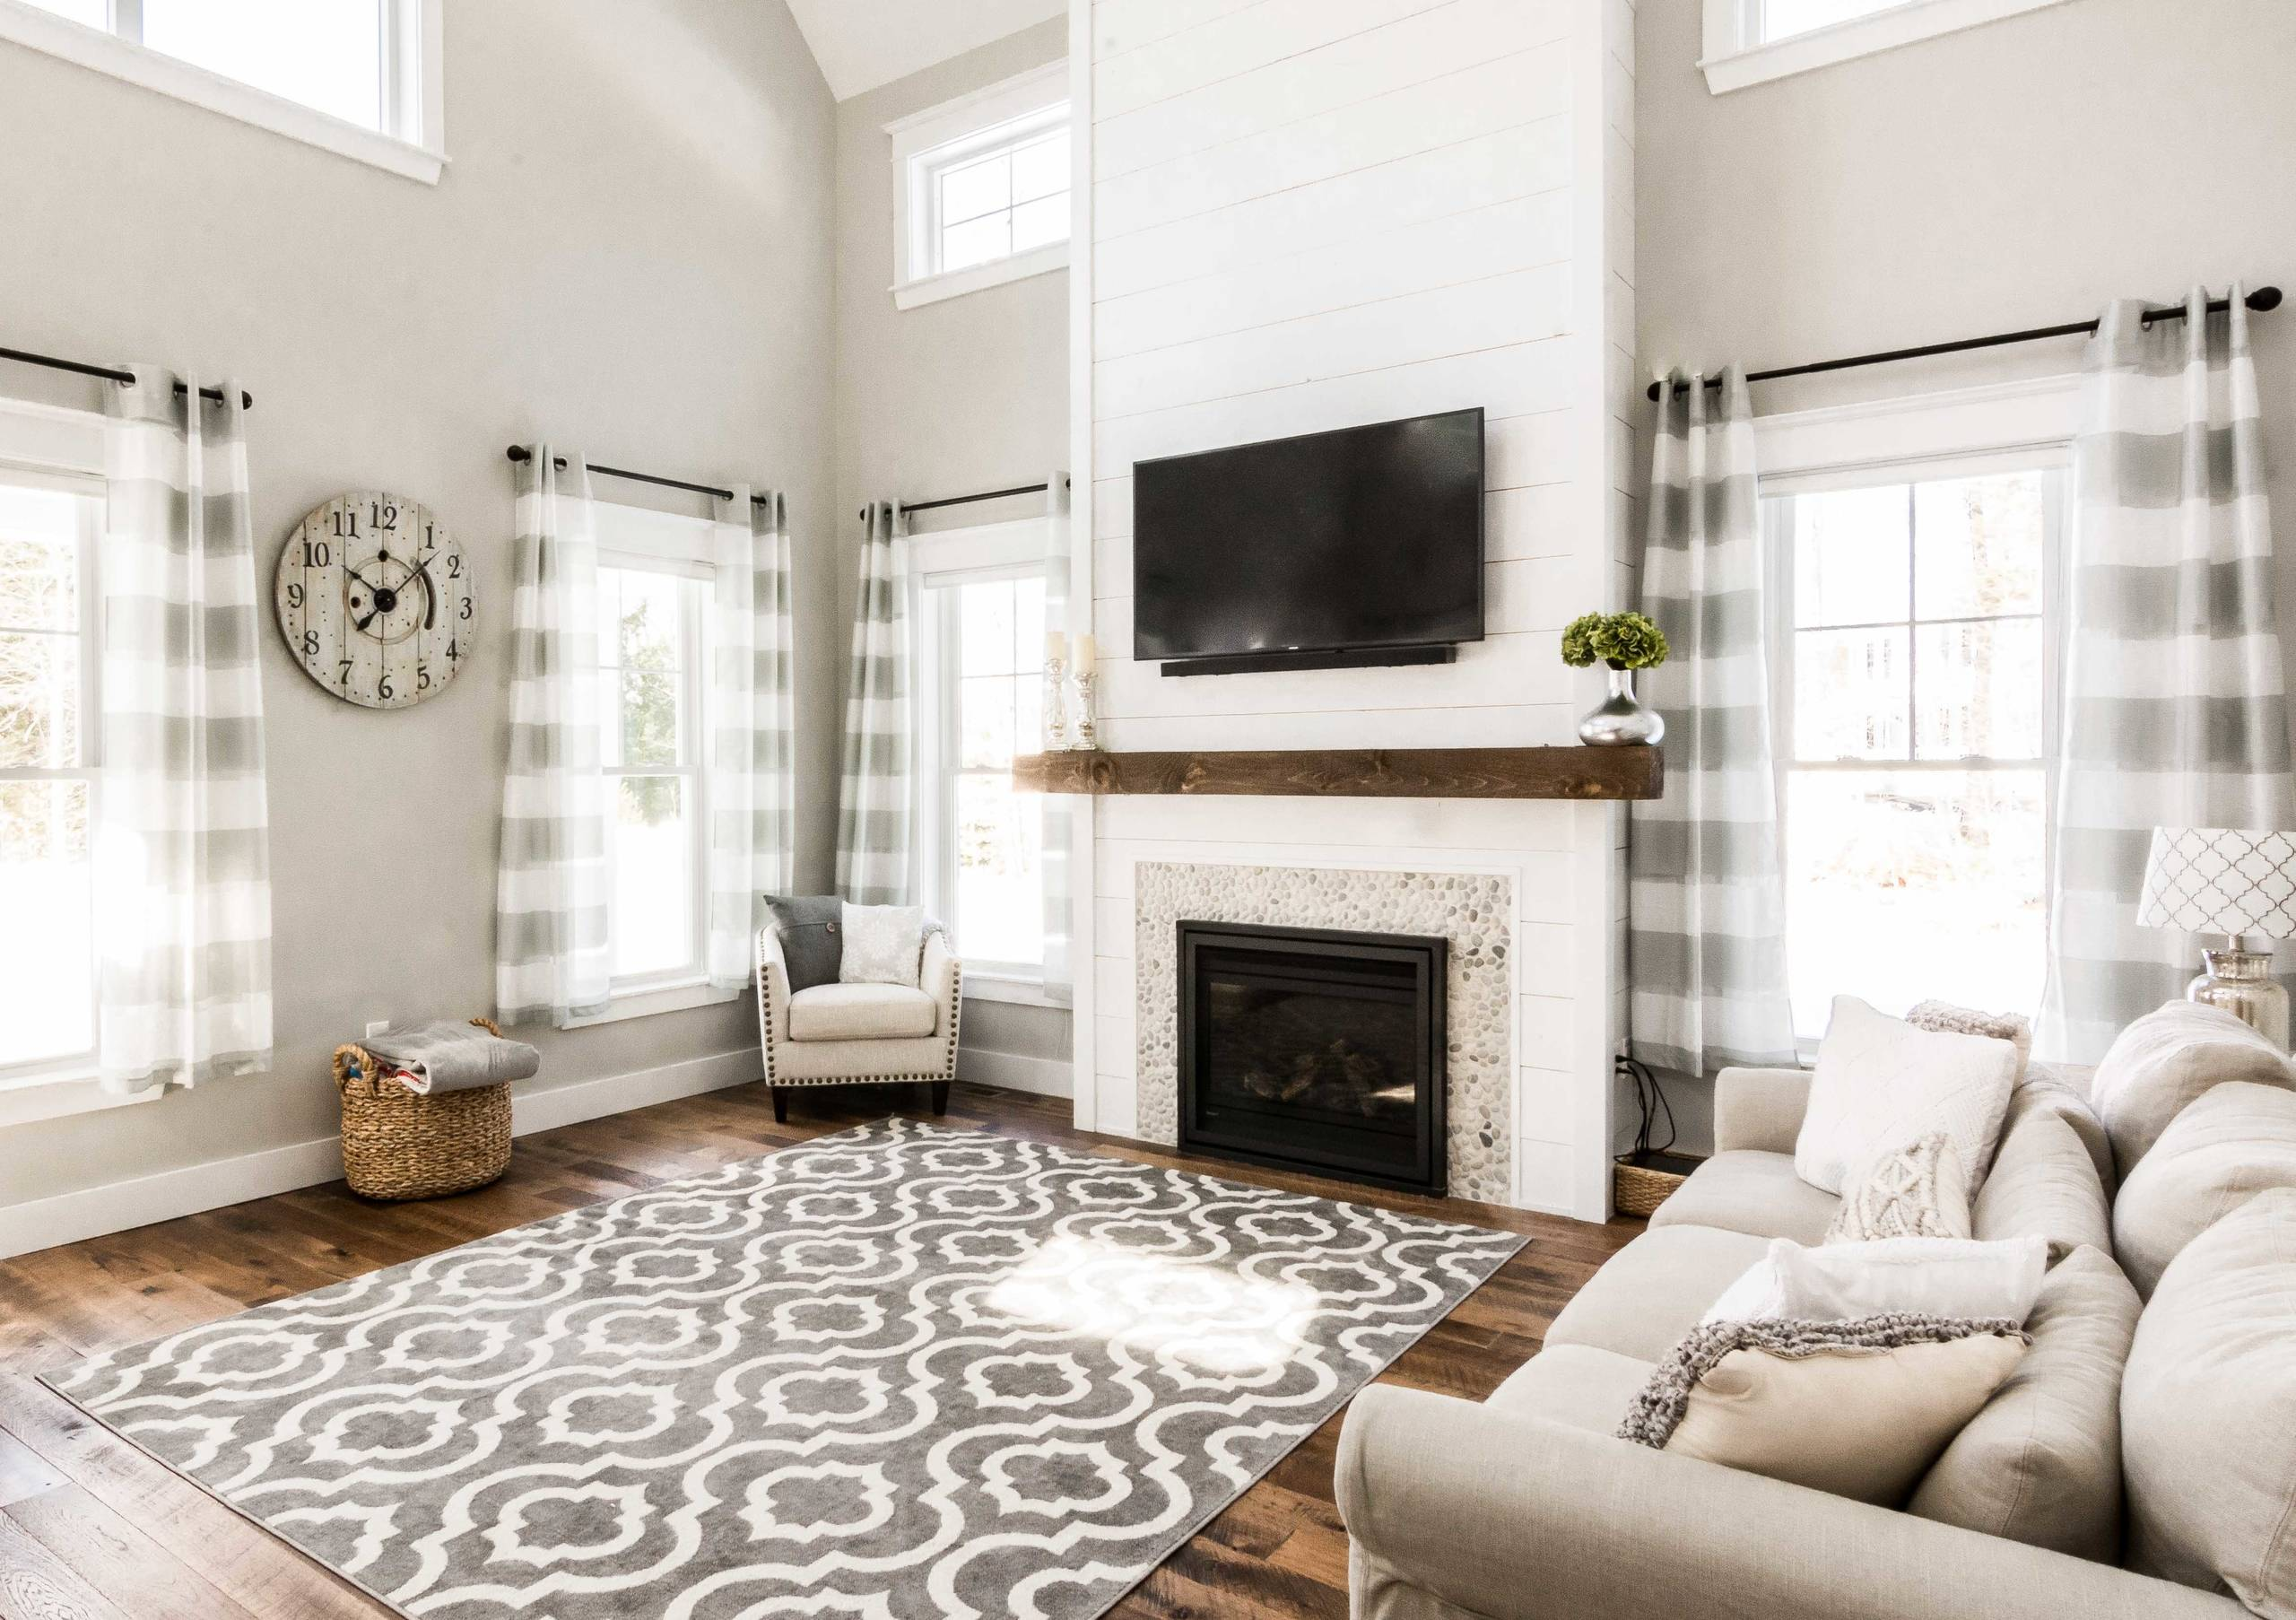 75 Beautiful Farmhouse Living Room With A Stone Fireplace Pictures Ideas February 2021 Houzz